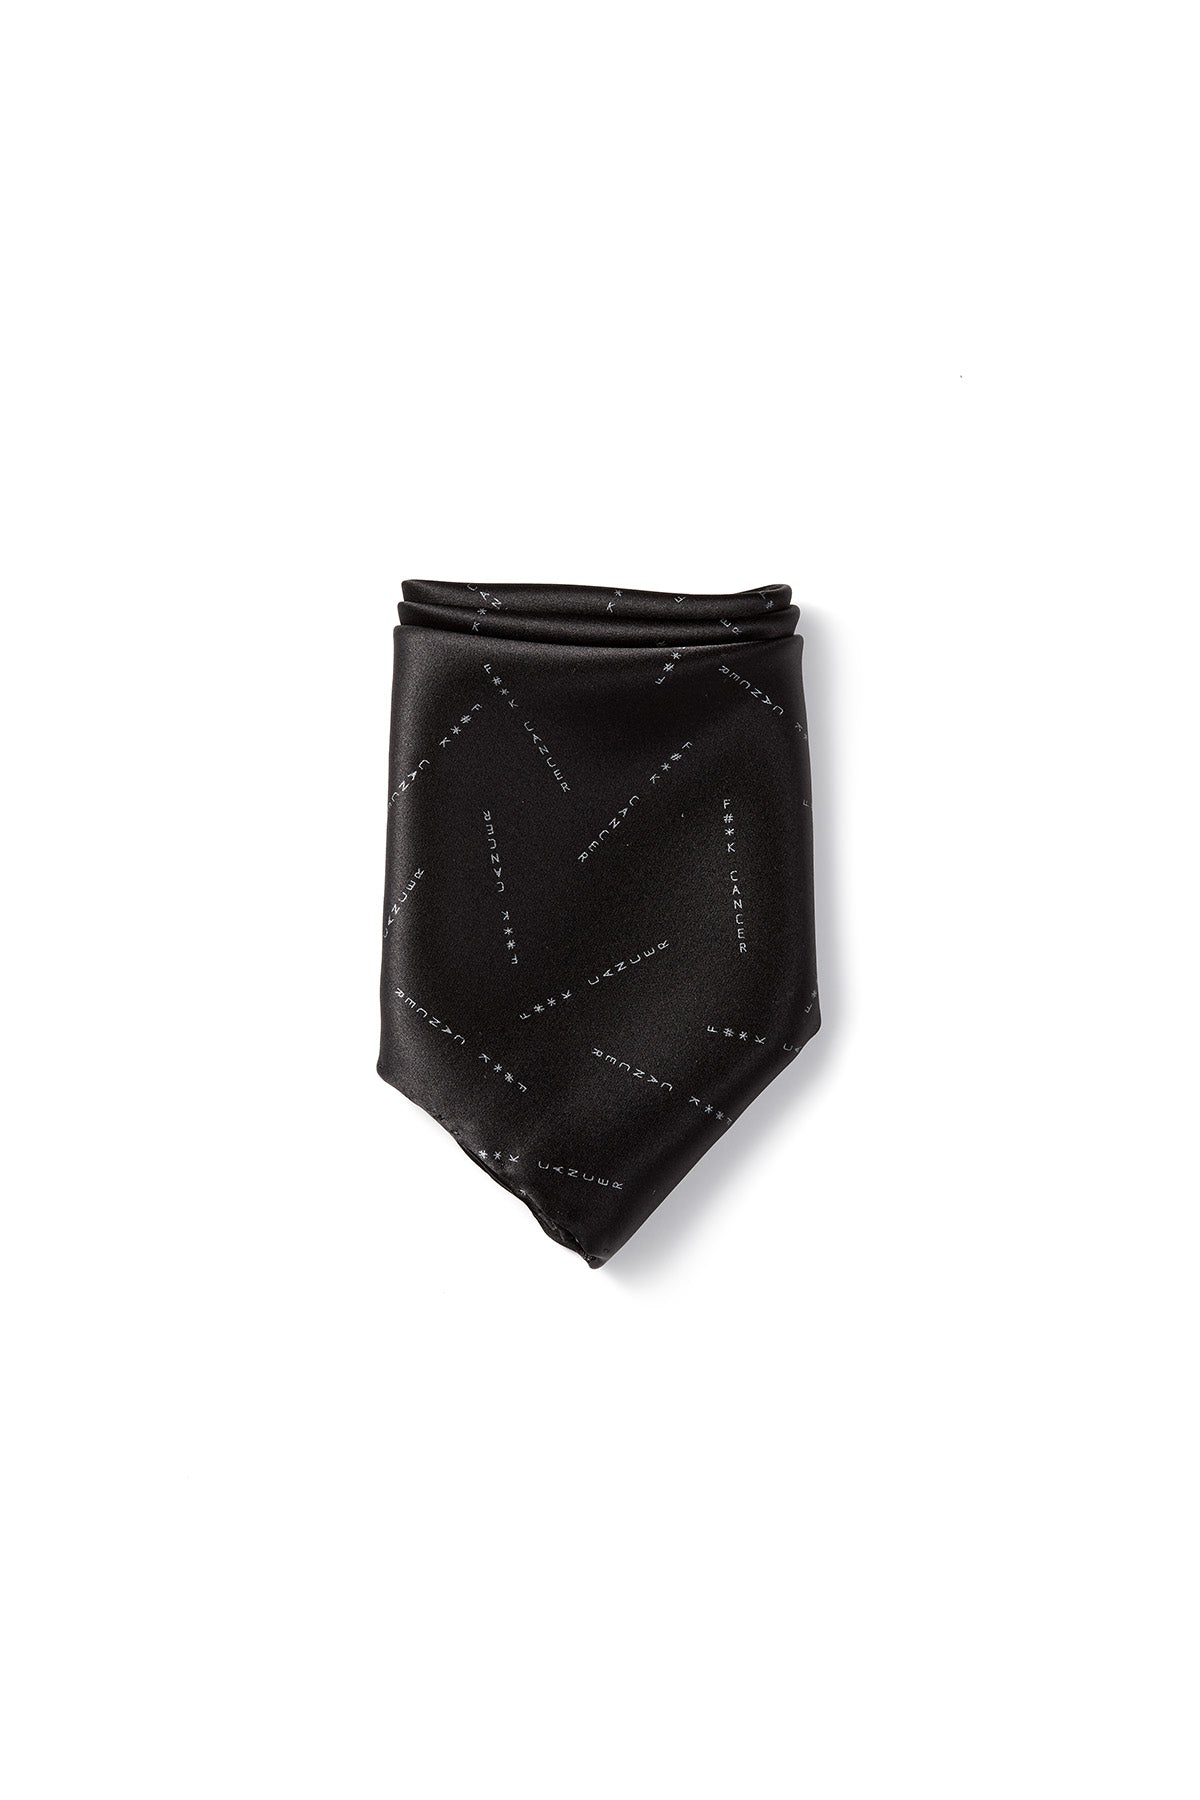 Miracles For Kids Exclusive Silk Pocket Square - Black